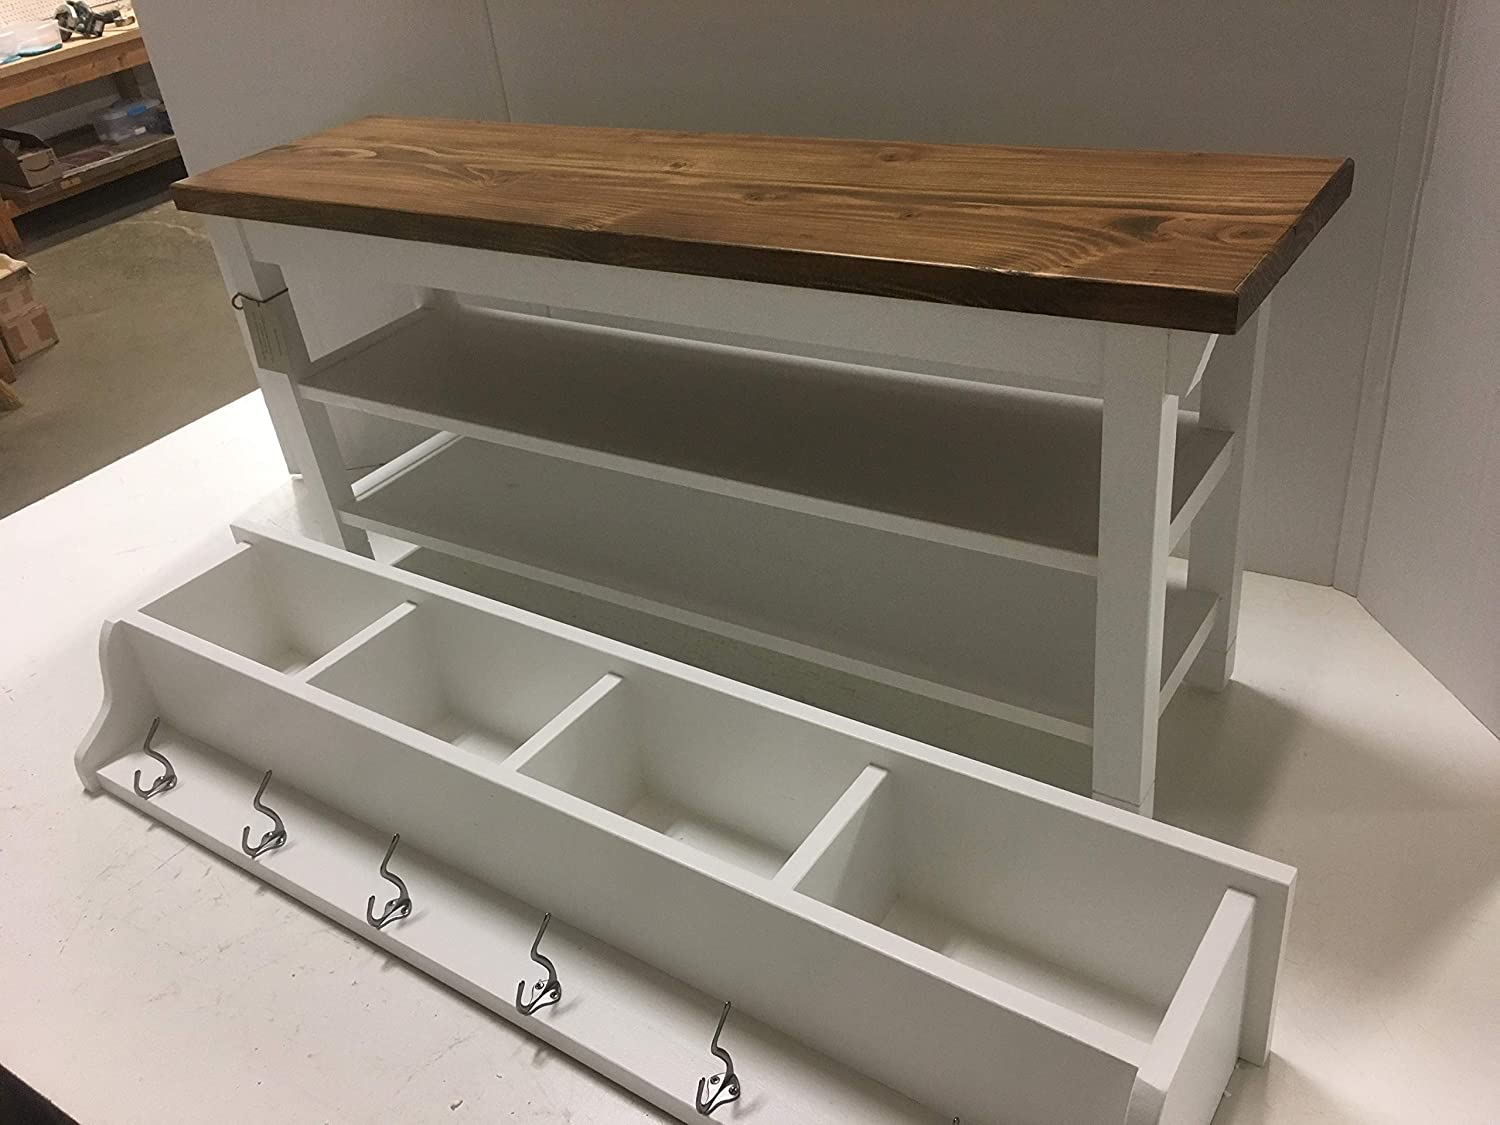 Miraculous Hallway Mud Room Foyer Bench 40 Inch With Second Shoe Shelf And Matching Coat Rack Cubbie Ibusinesslaw Wood Chair Design Ideas Ibusinesslaworg